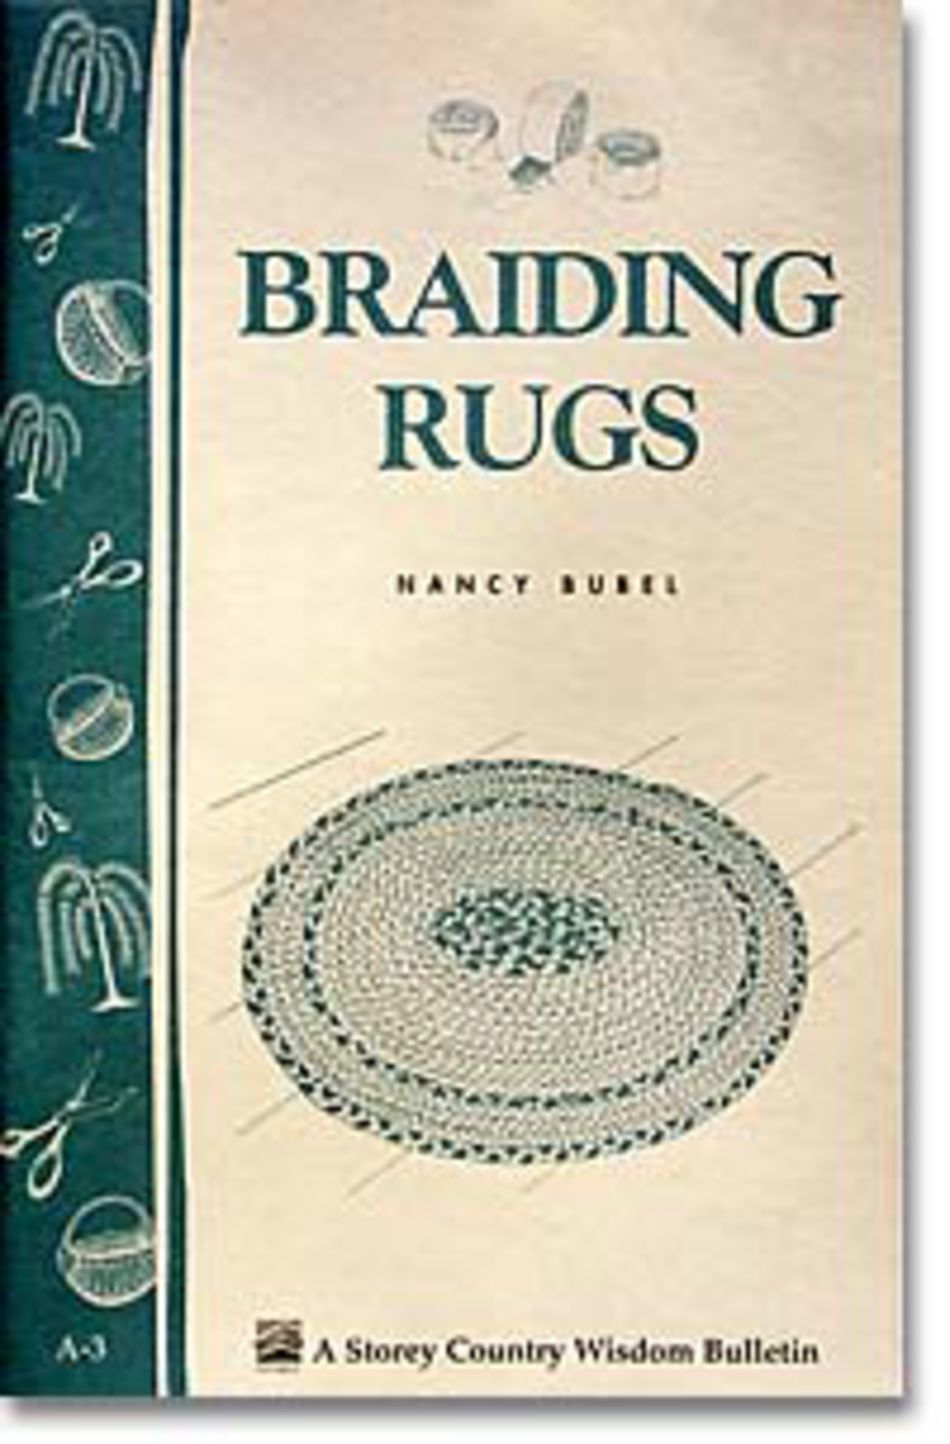 Rug Making Books Braiding Rugs